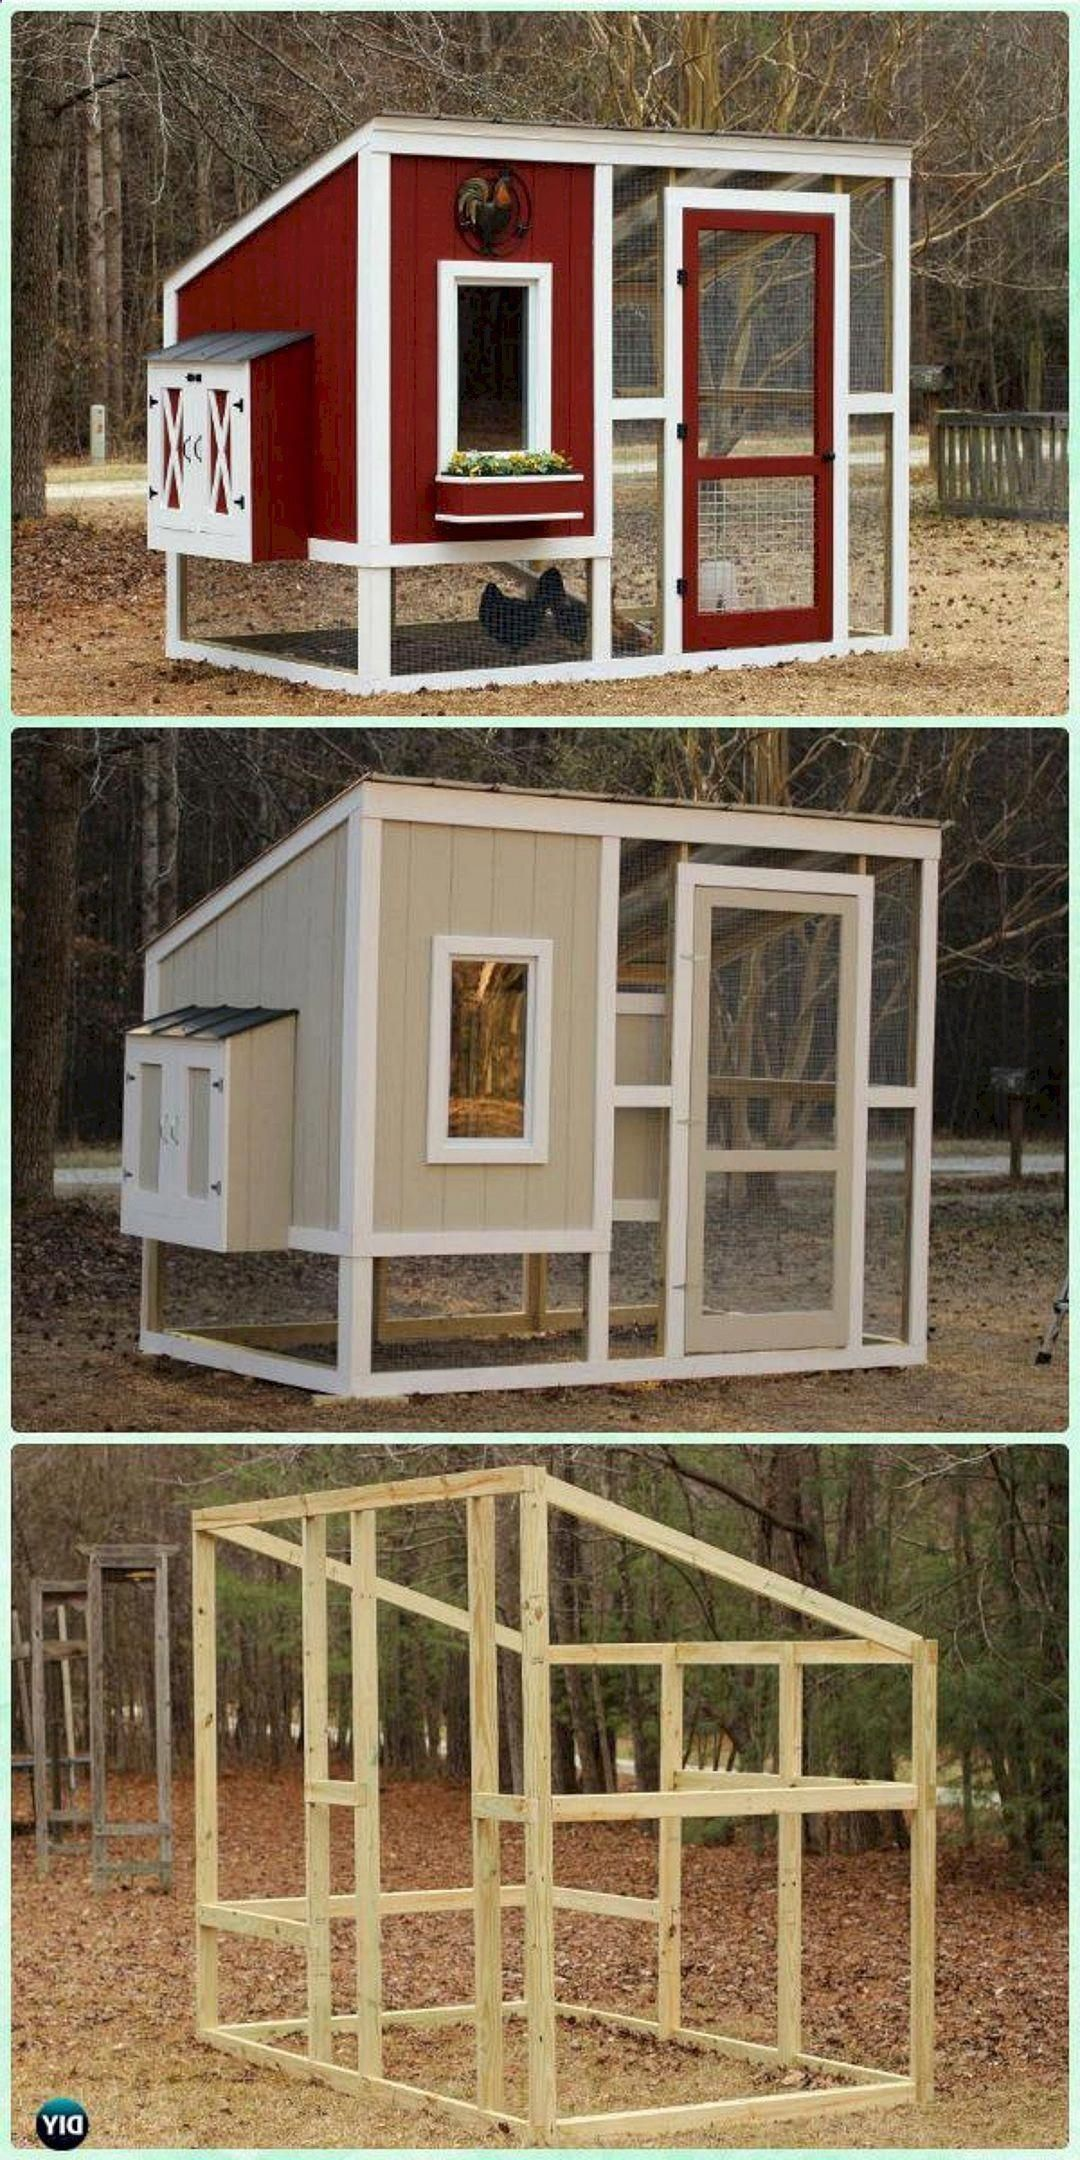 22 Low Budget Diy Backyard Chicken Coop Plans: Awesome 75 Creative And Low-Budget DIY Chicken Coop Ideas For Your Backyard